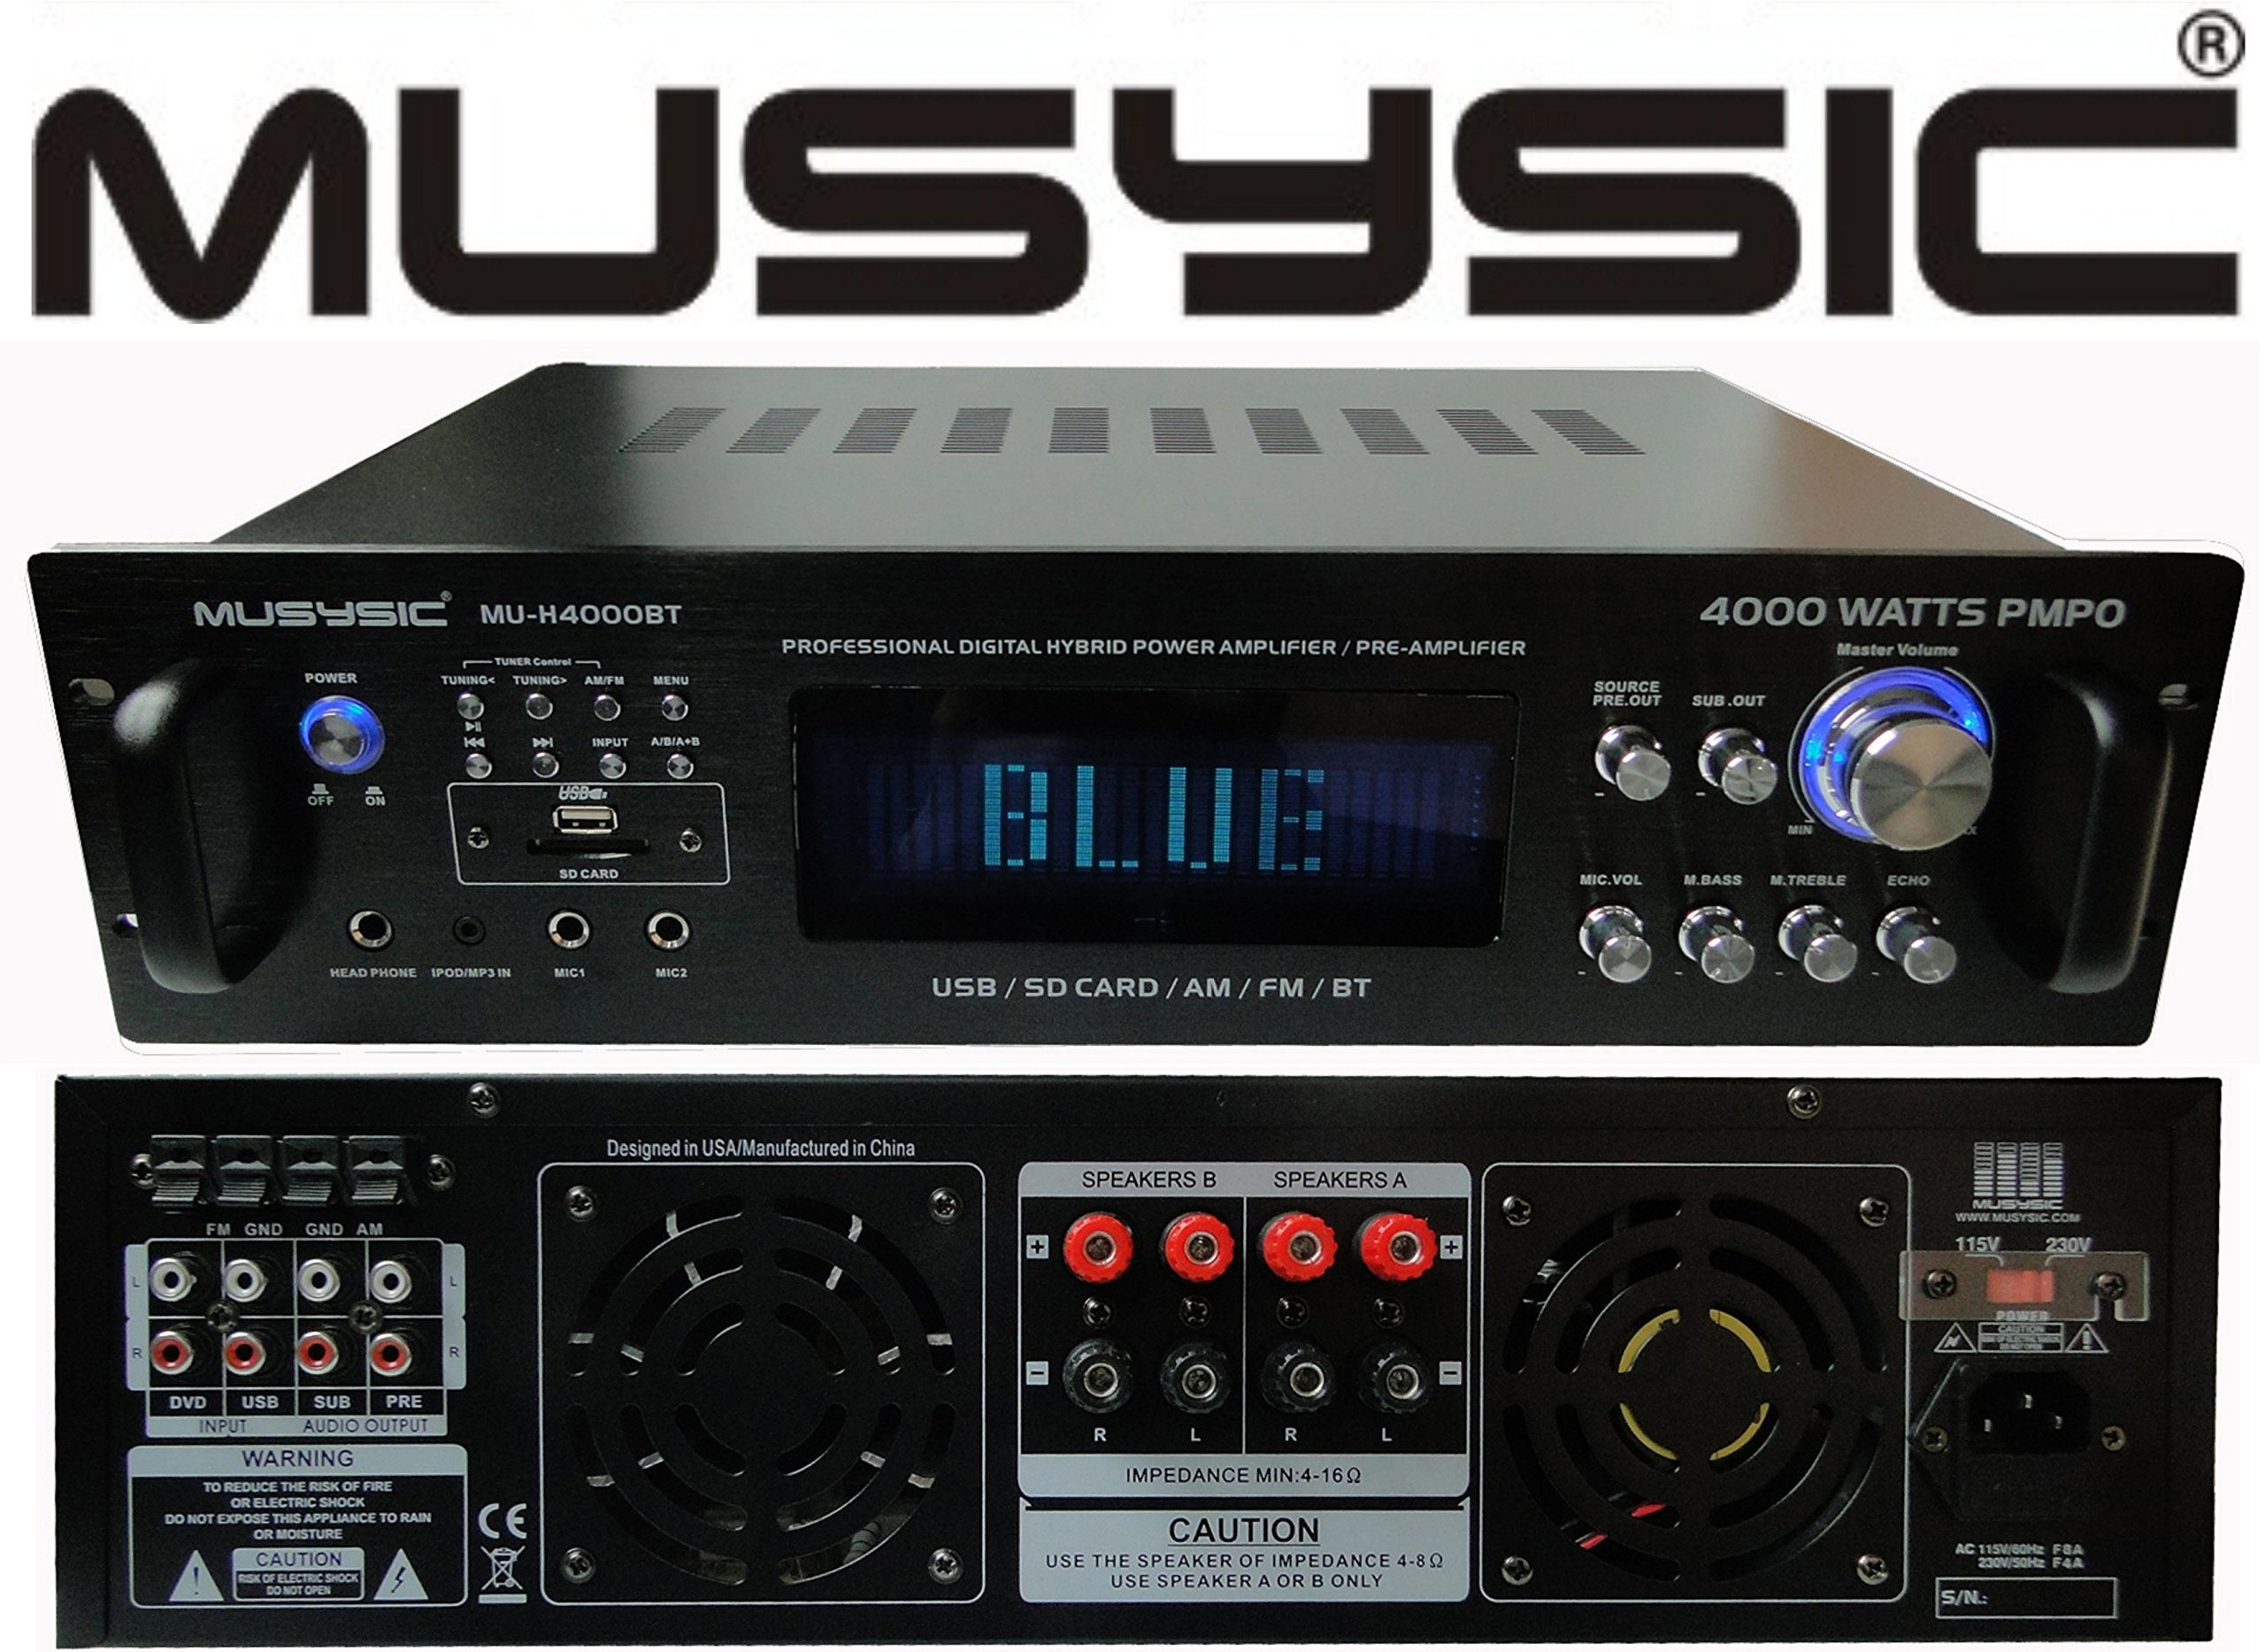 Professional 4000 Watts Hybrid Power Amplifier / Pre-Amplifier / Receiver Bluetooth AM/FM Tuner USB/SD Slot MP3 / iPod Input MU-H4000BT by MUSYSIC (Image #1)